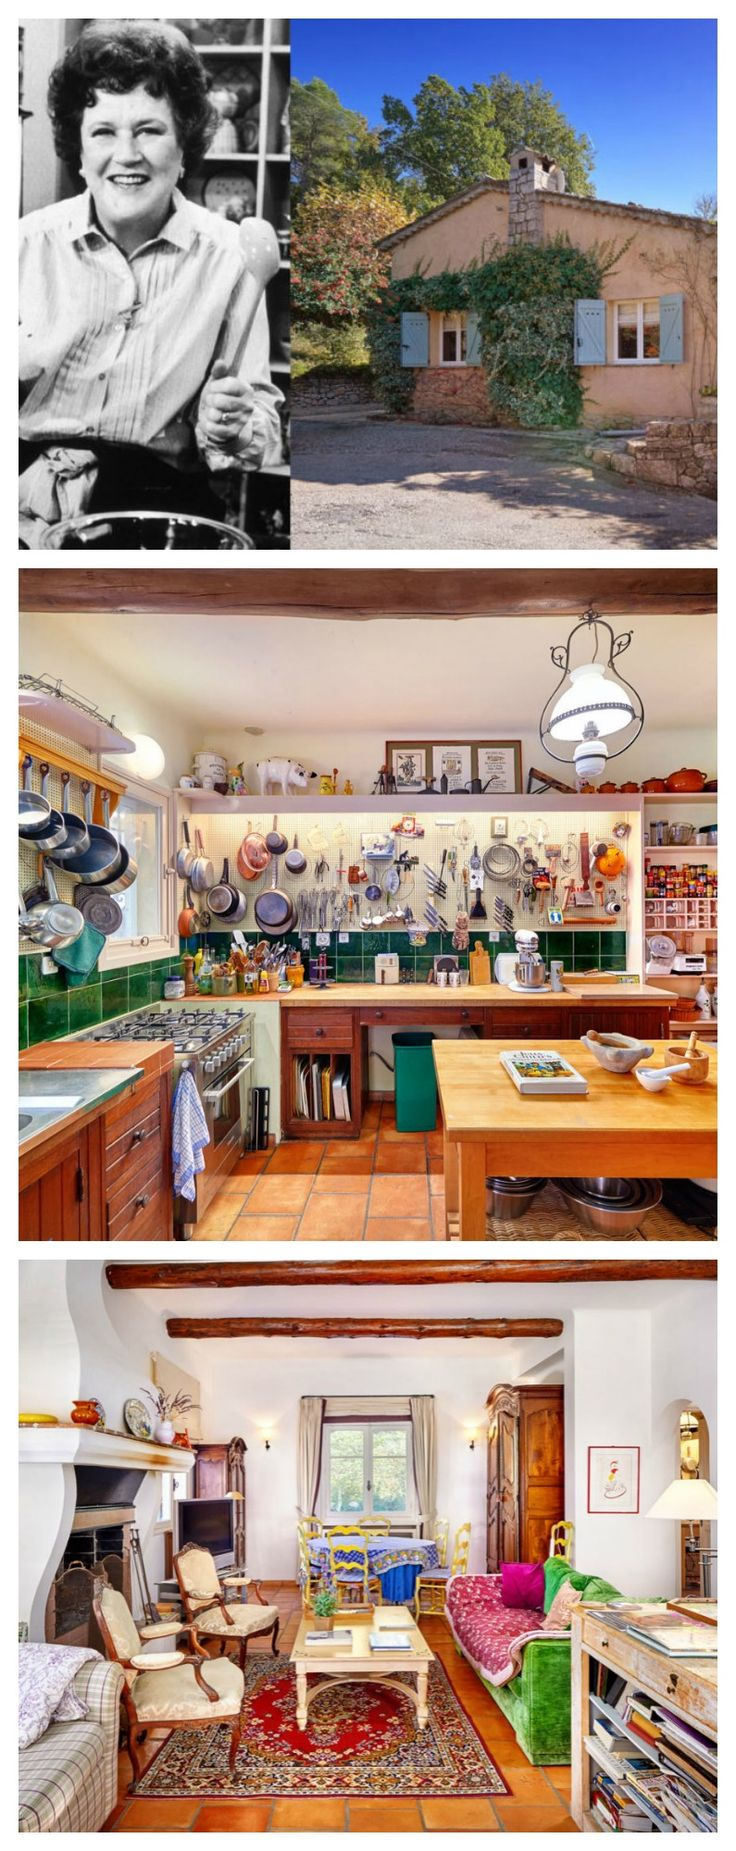 """The French country home of author and famous chef, Julia Child, is on the market for the first time in its 50 year history. Dubbed """"La Pitchoune"""" – which translates to """"The Little Thing""""- the 1,500-square-foot country estate in Provence, France, features delightfully rustic interiors, spectacular views, and of course, a large and organized kitchen."""